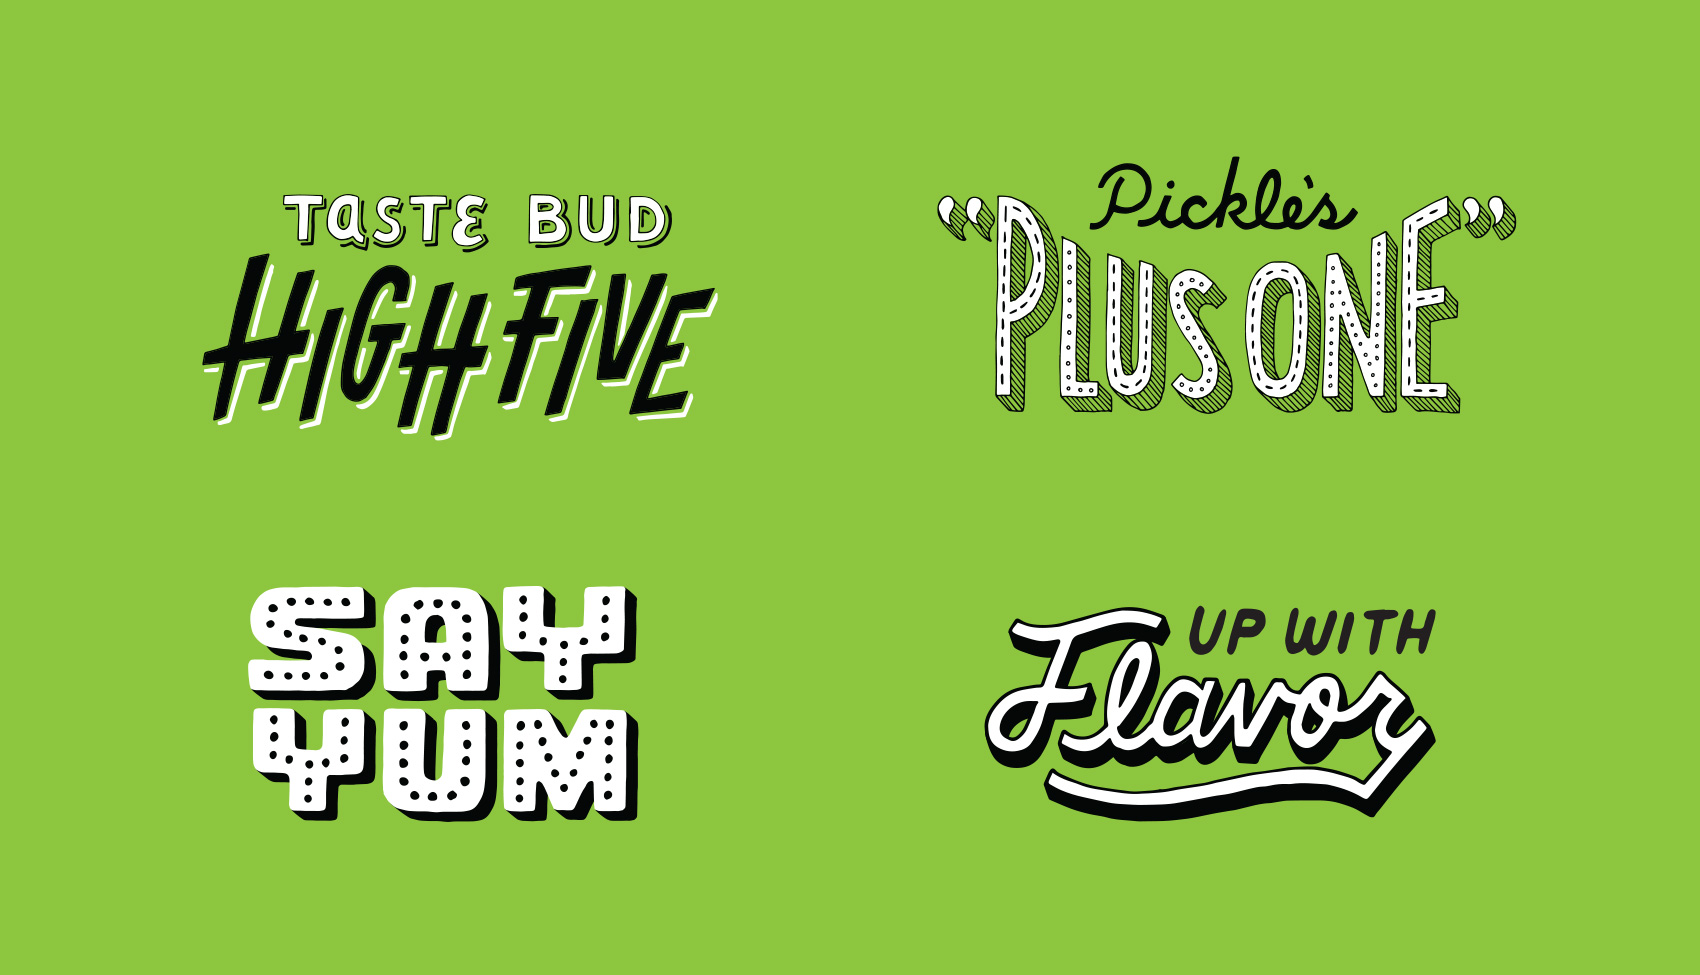 Quartet of hand lettered phrases: taste bud high five, pickle's plus one, say yum, and up with flavor.